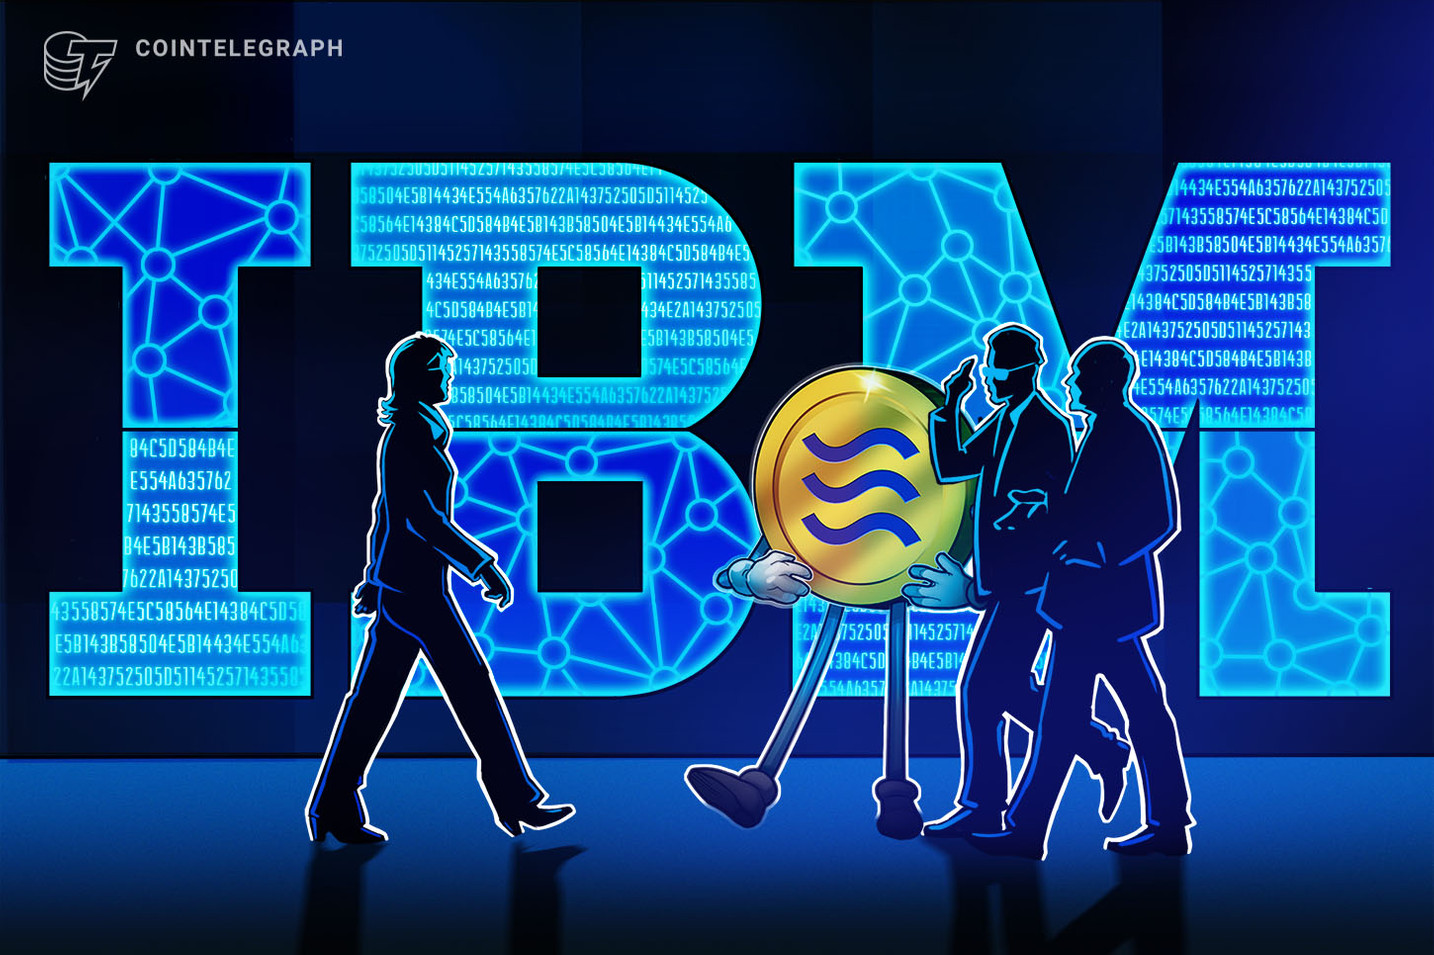 IBM Says It's Open to Working With Facebook on Libra Crypto